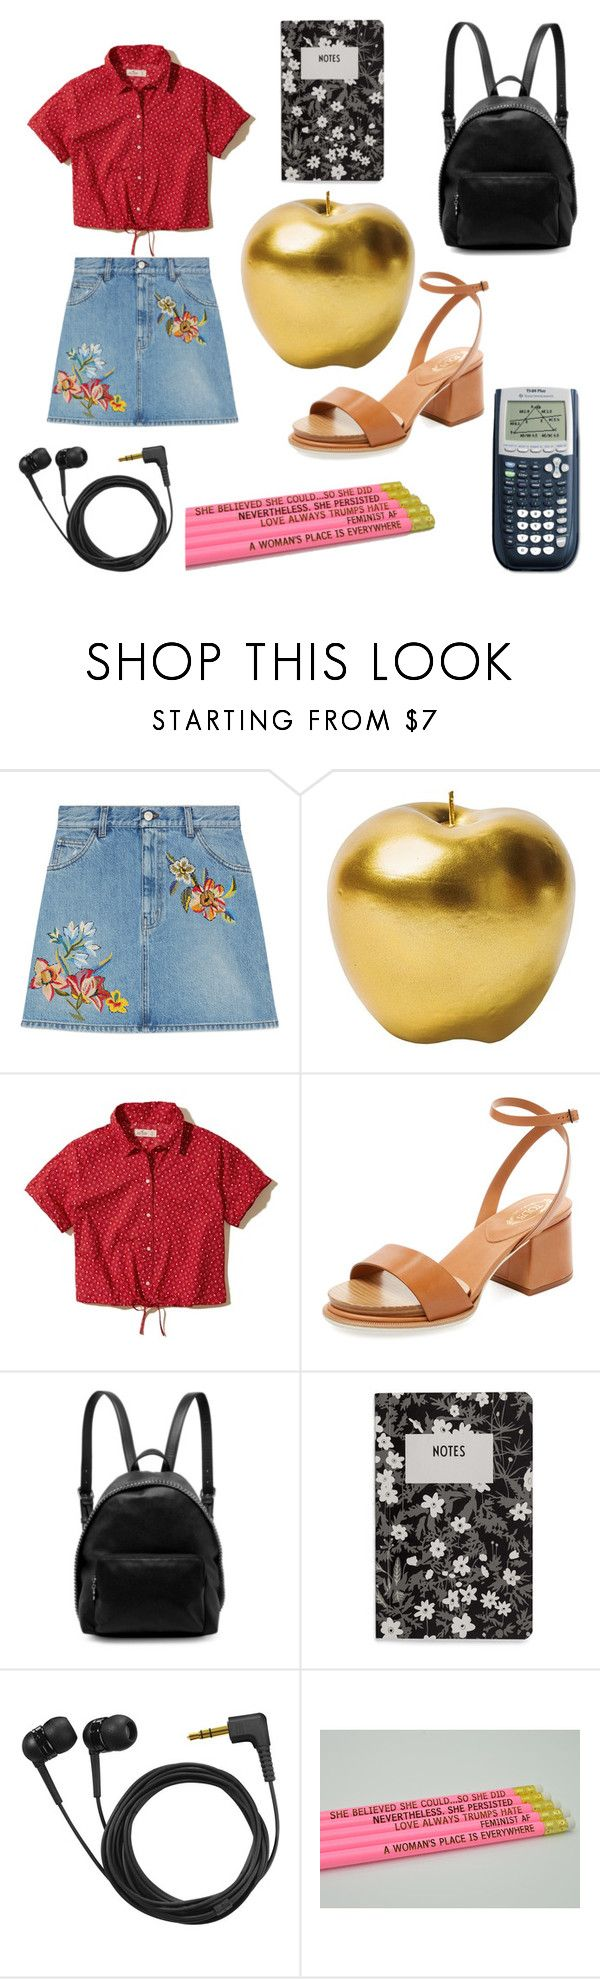 """""""TEACHERS PET"""" by newsquad ❤ liked on Polyvore featuring Gucci, Bitossi, Hollister Co., Tod's, STELLA McCARTNEY, Design Letters and Sennheiser"""